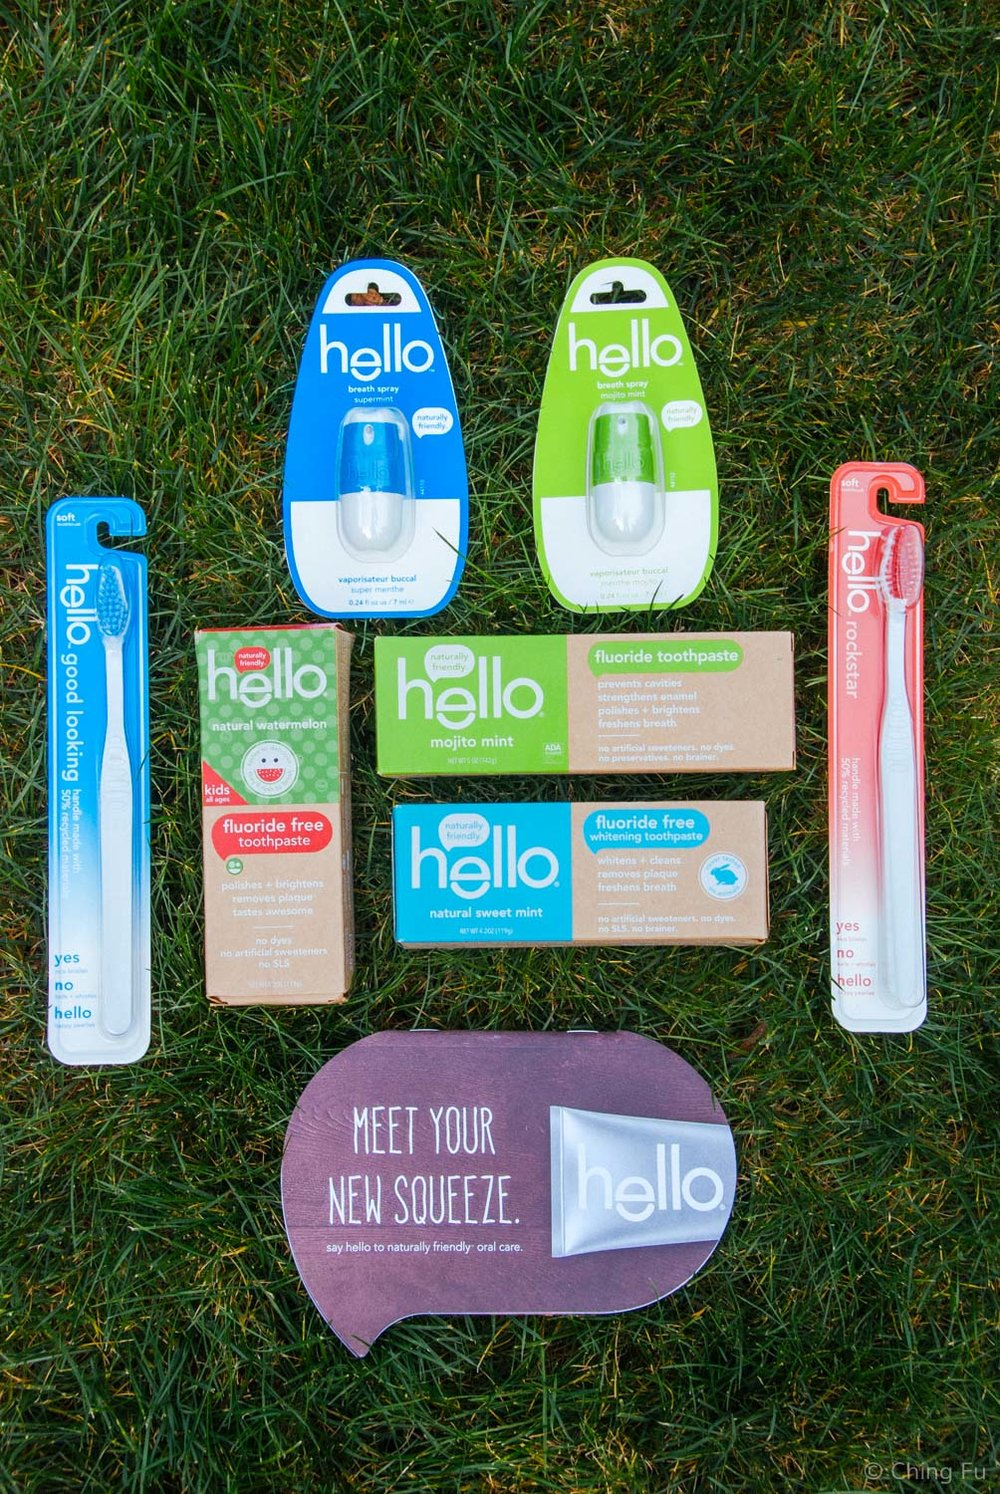 Hello toothpastes, toothbrushes, and breath sprays.